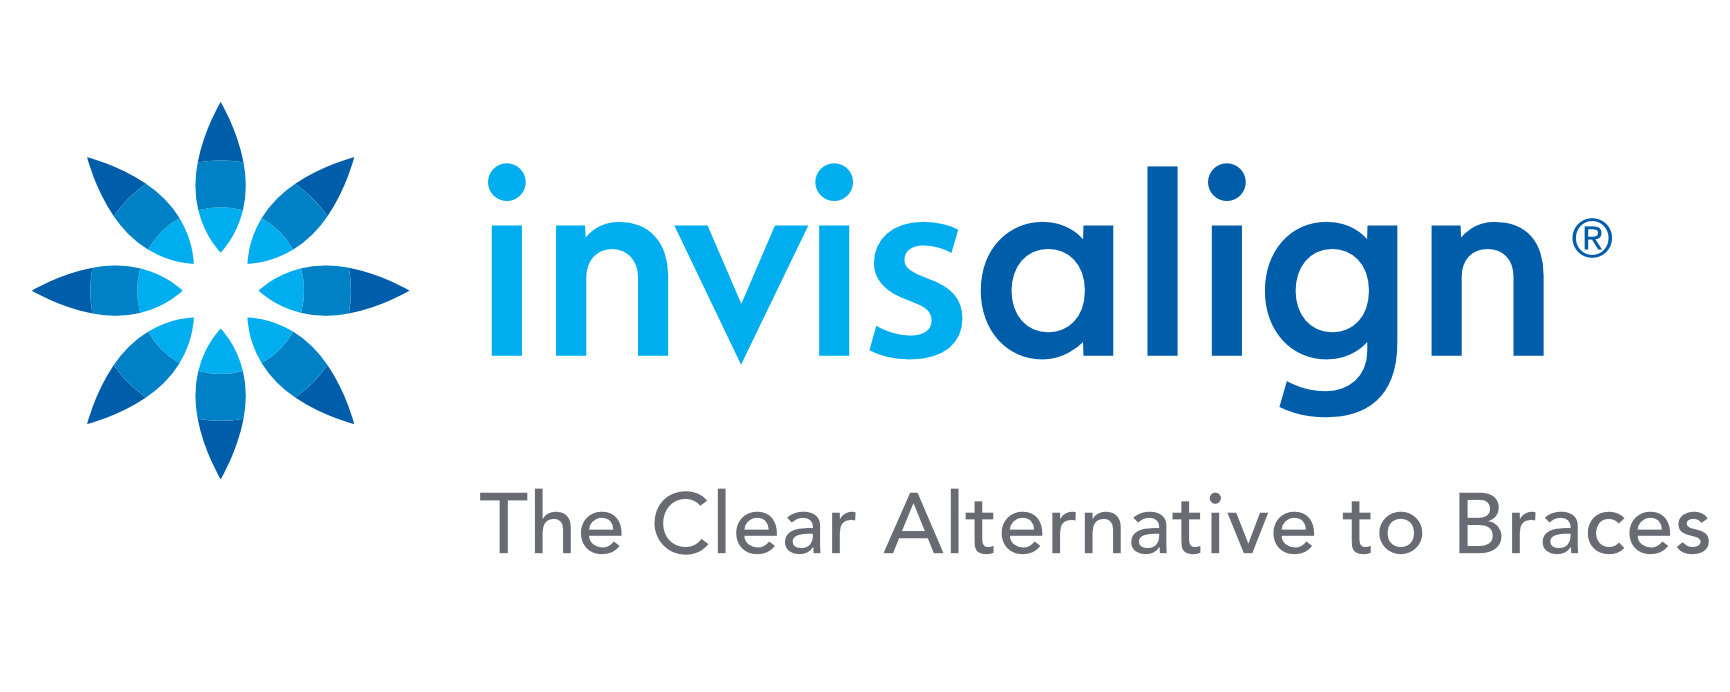 Invisalign at 32dental Studio, Nairobi Kenya, braces, aligners